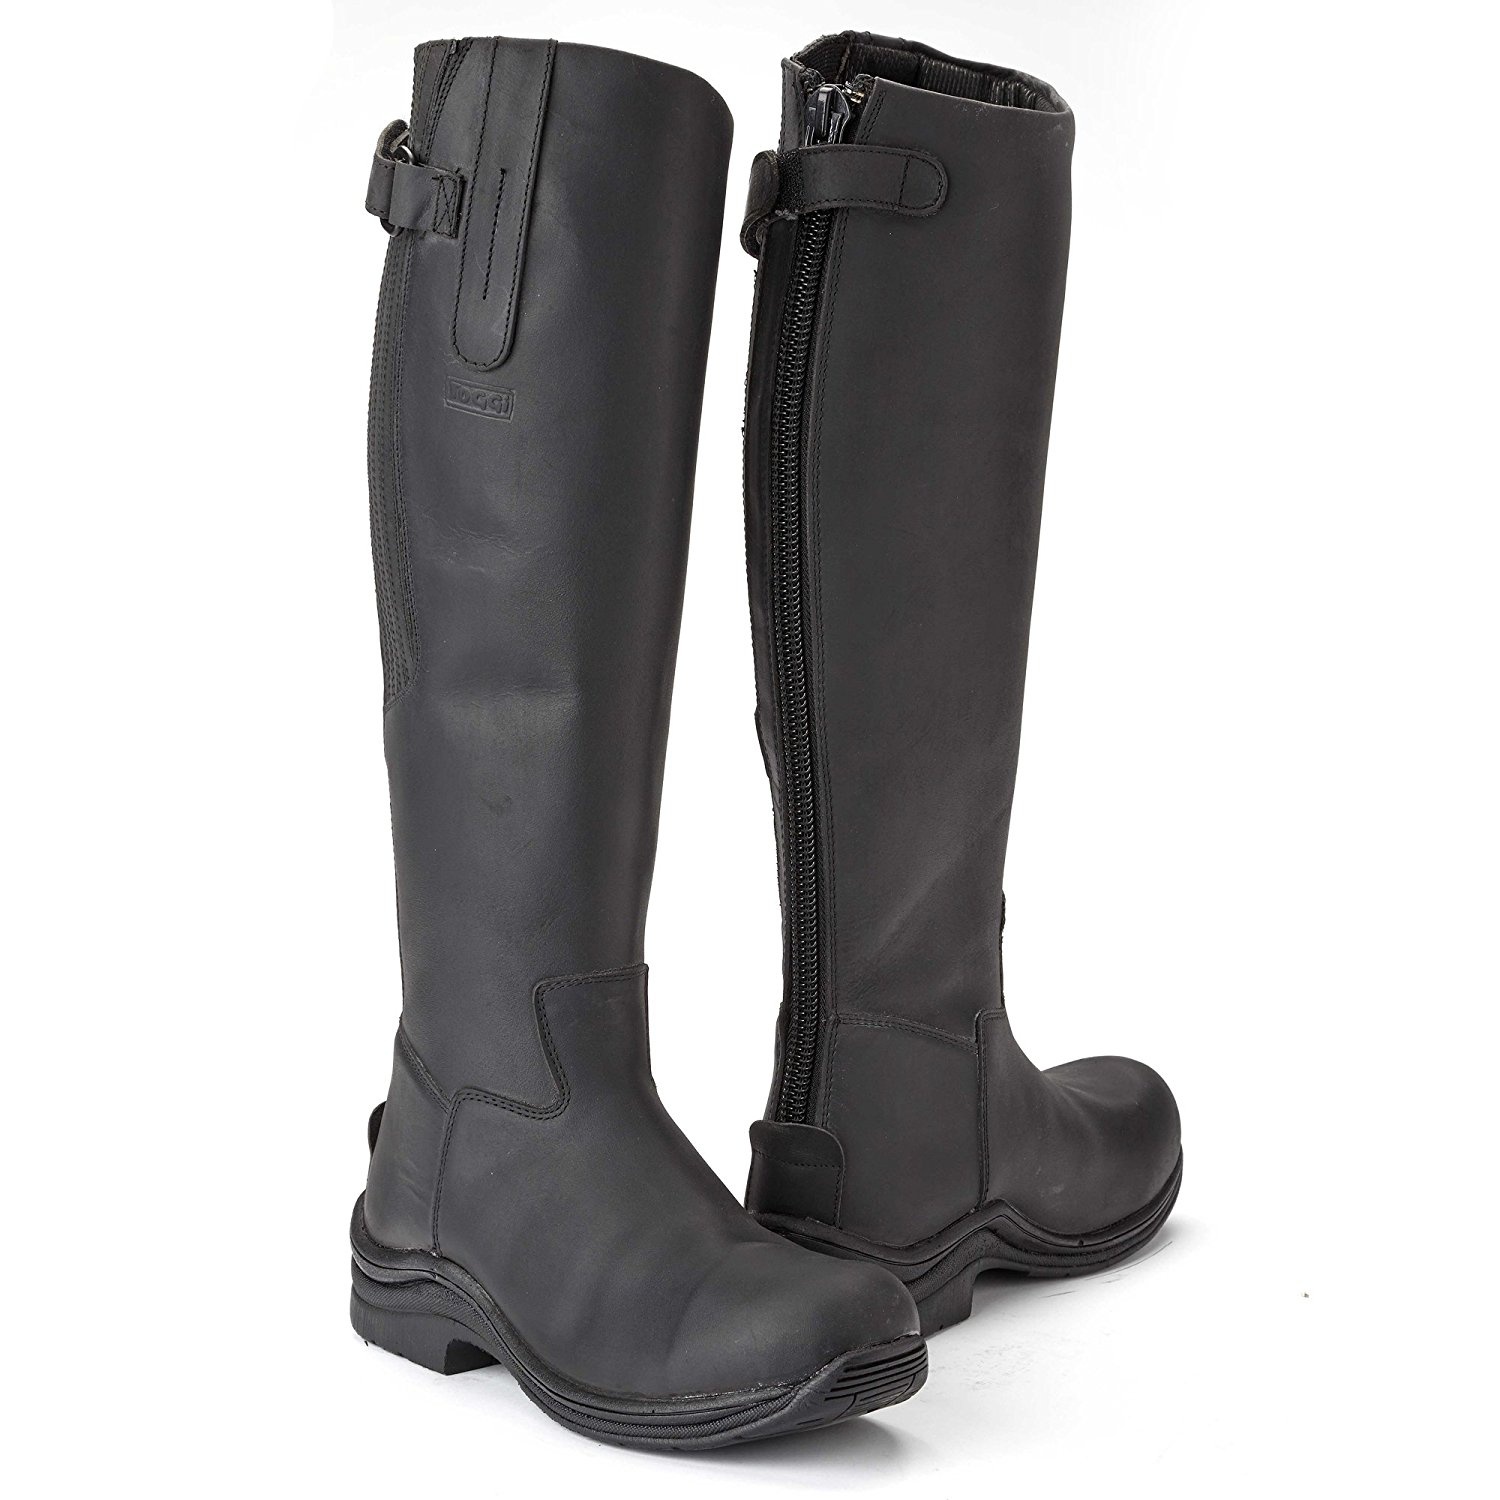 toggi boots toggi calgary riding boot: amazon.co.uk: sports u0026 outdoors yaijxdc